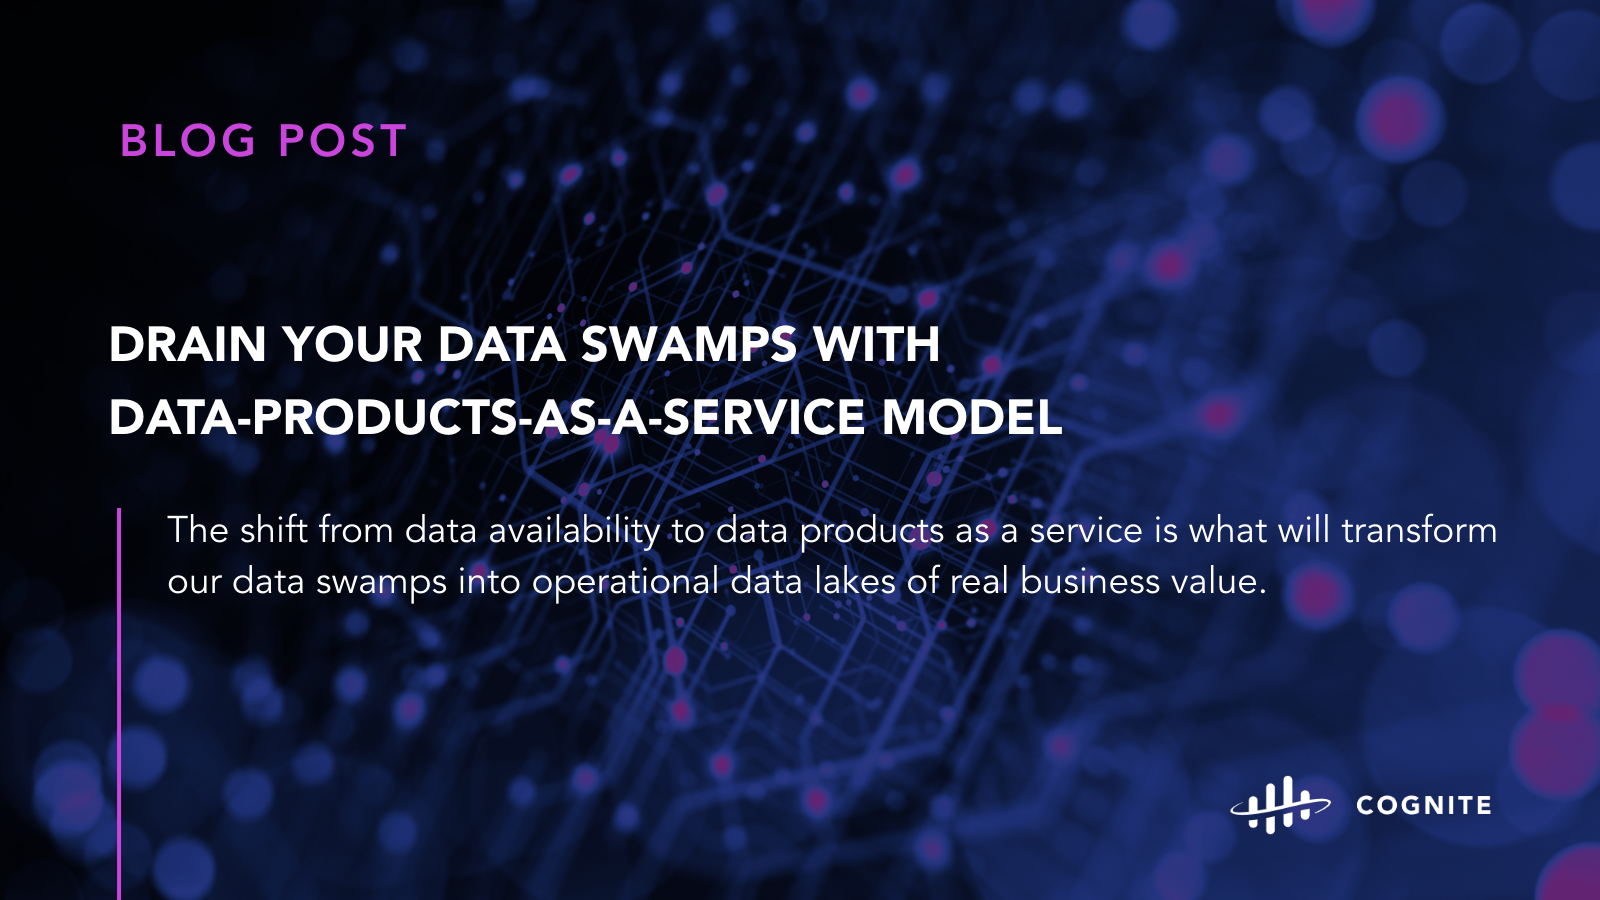 Drain Your Data Swamps with a Data-Products-as-a-Service Model